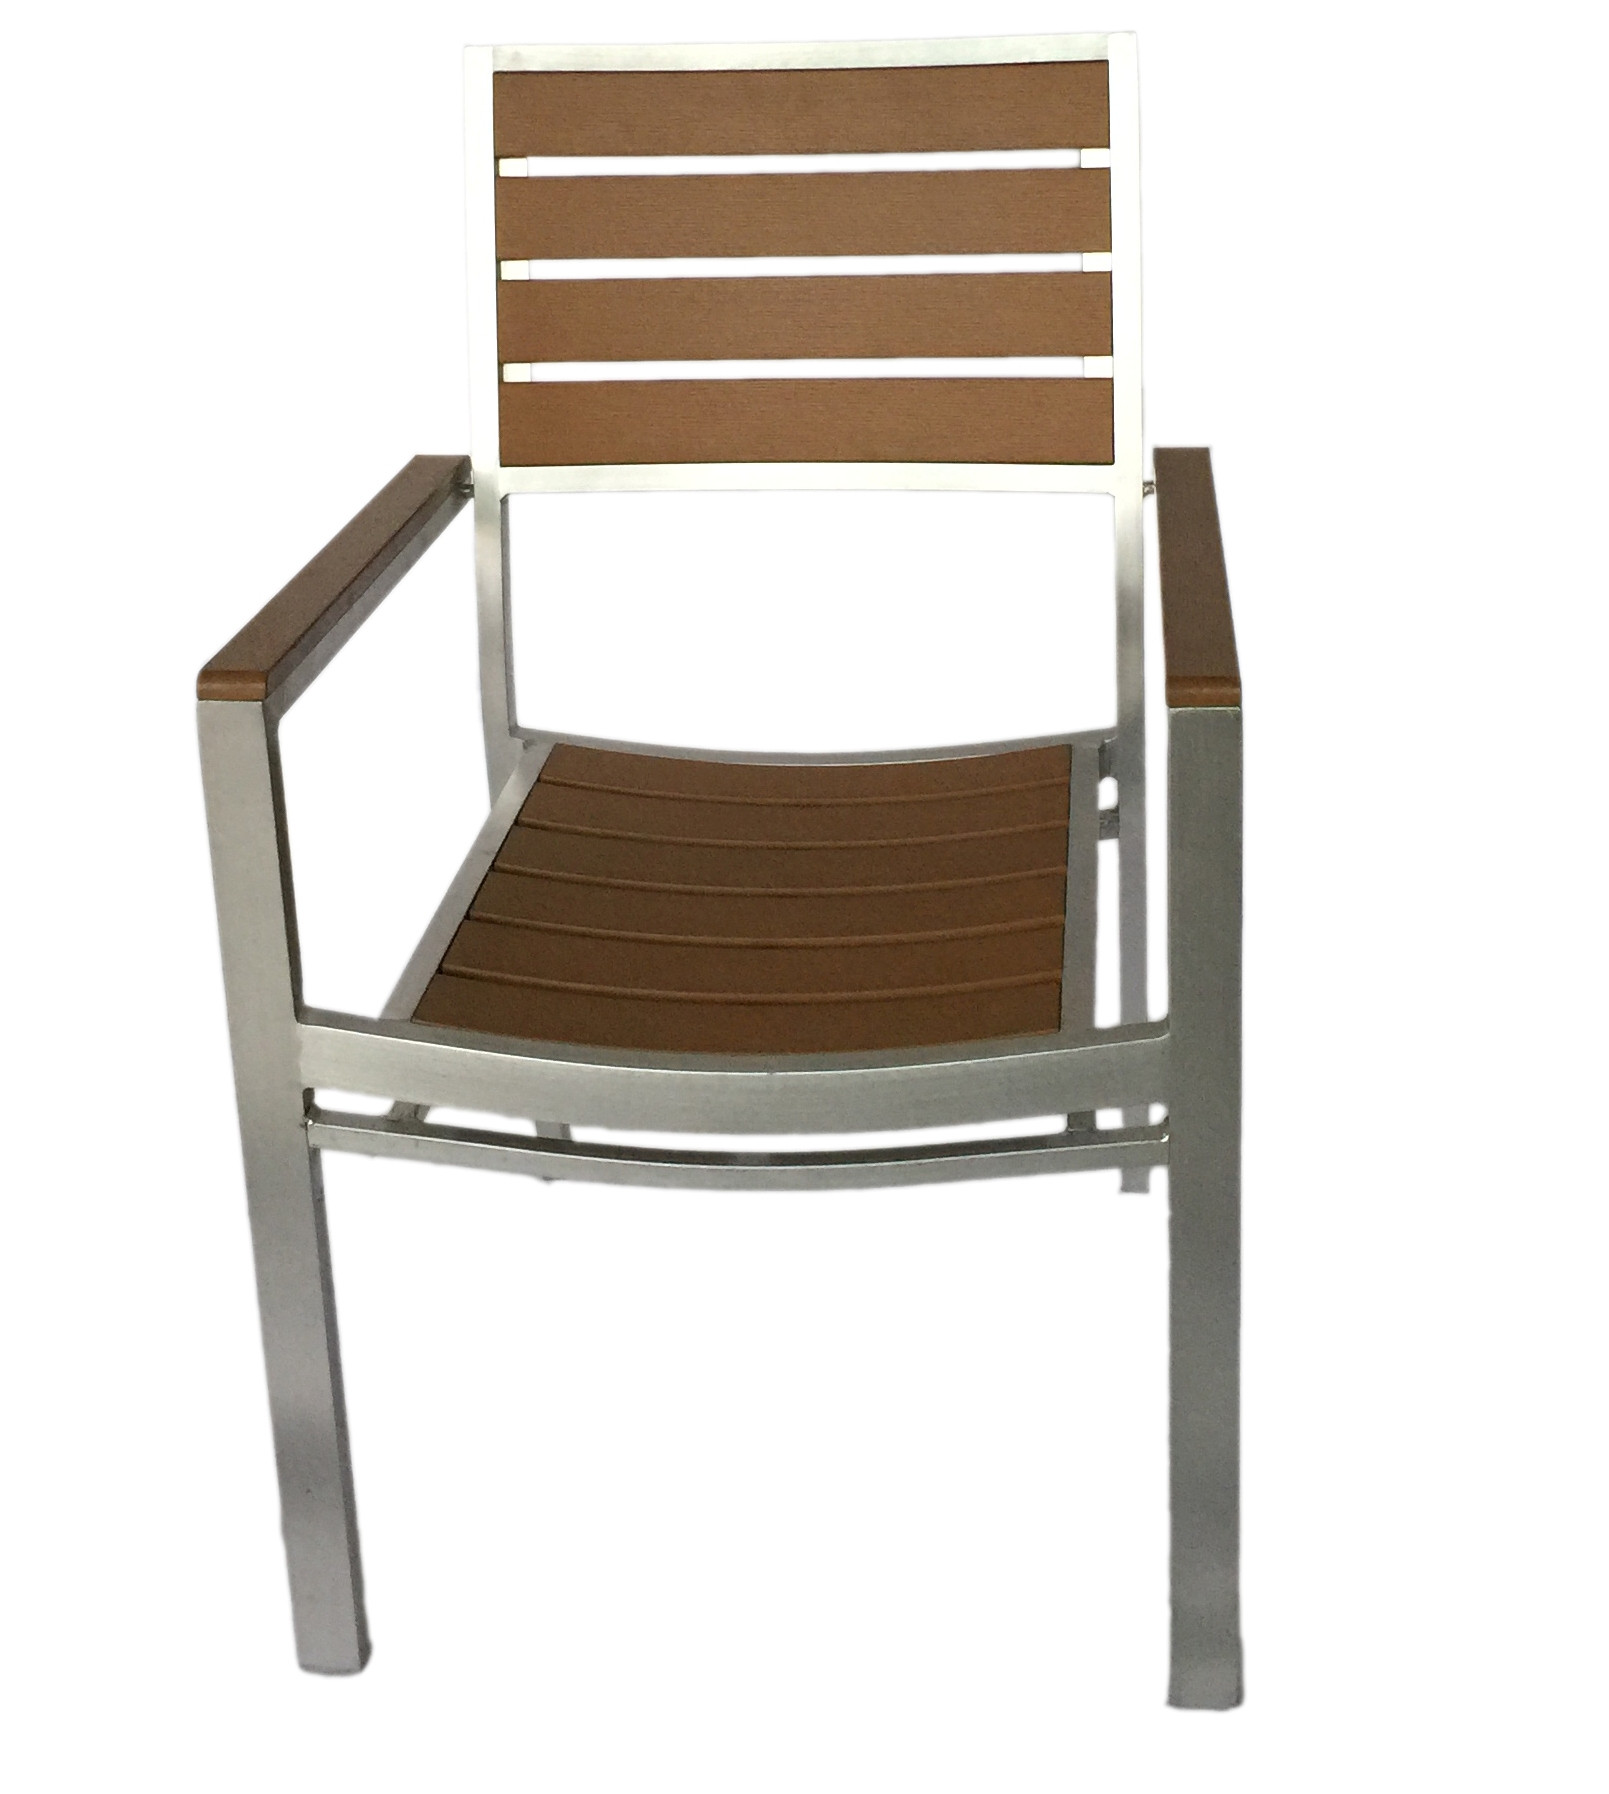 AAA Furniture Wholesale FB-08ARM CHAIR chair, armchair, outdoor